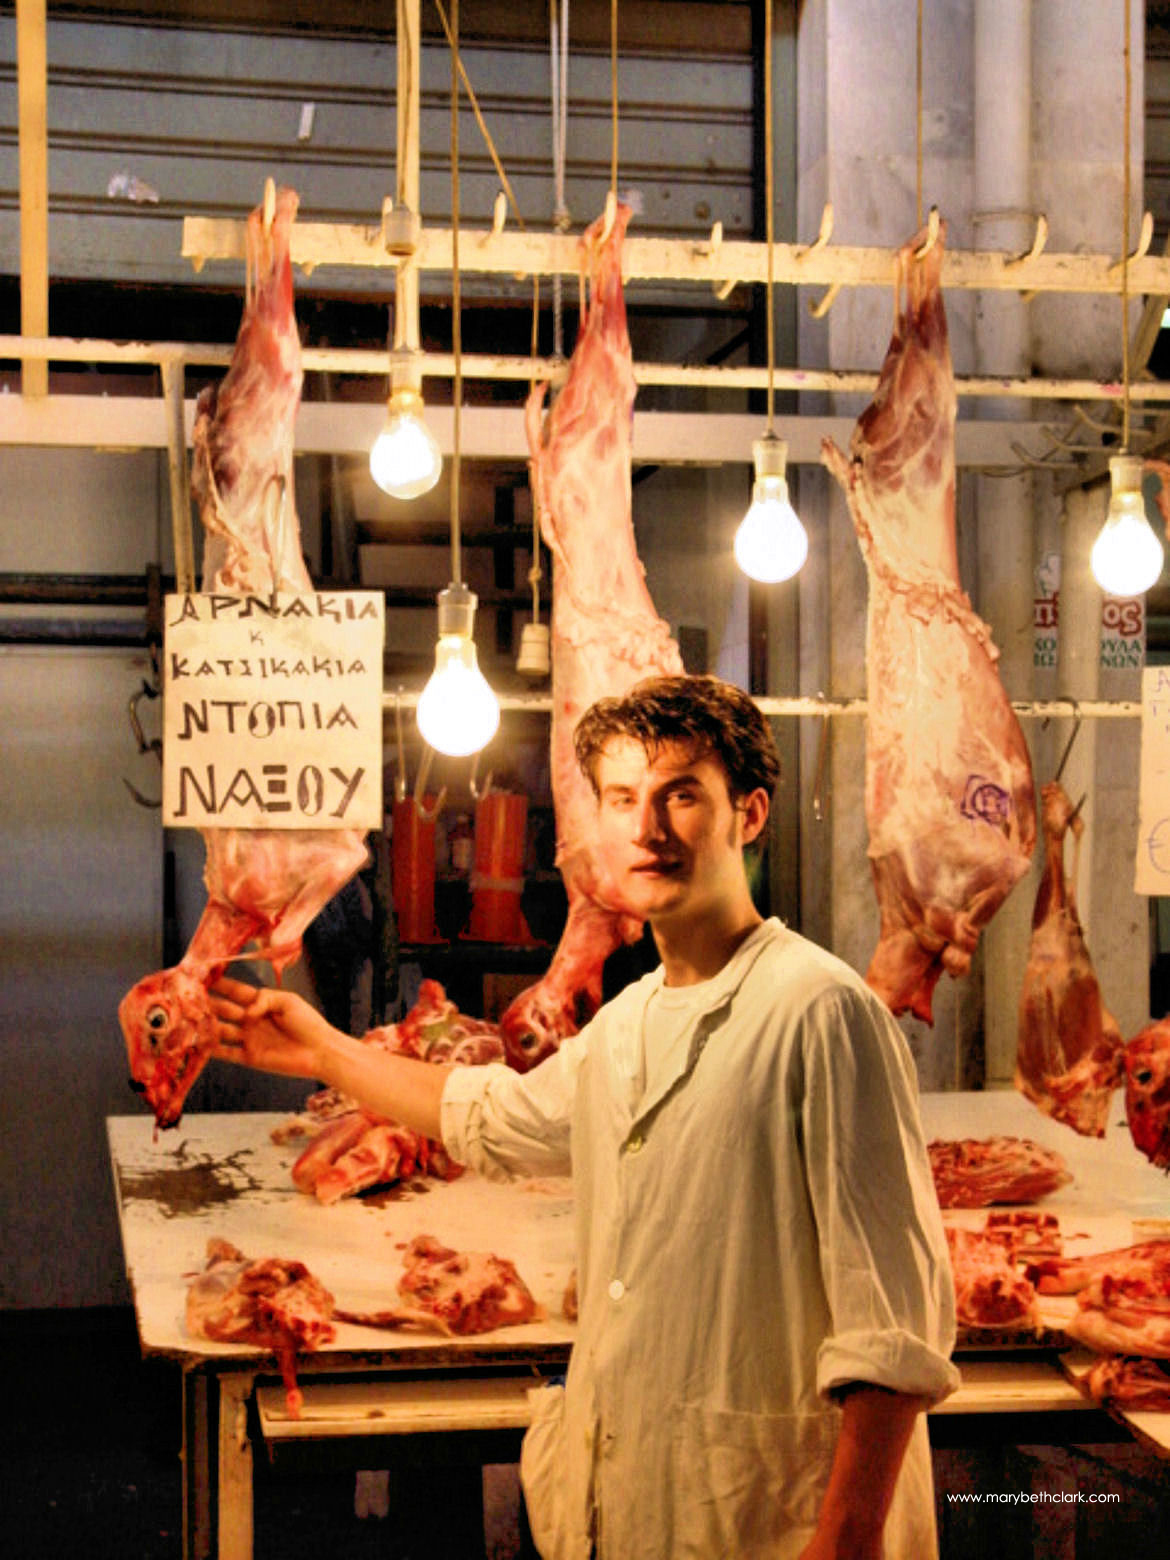 Athens Central Market: A Butcher